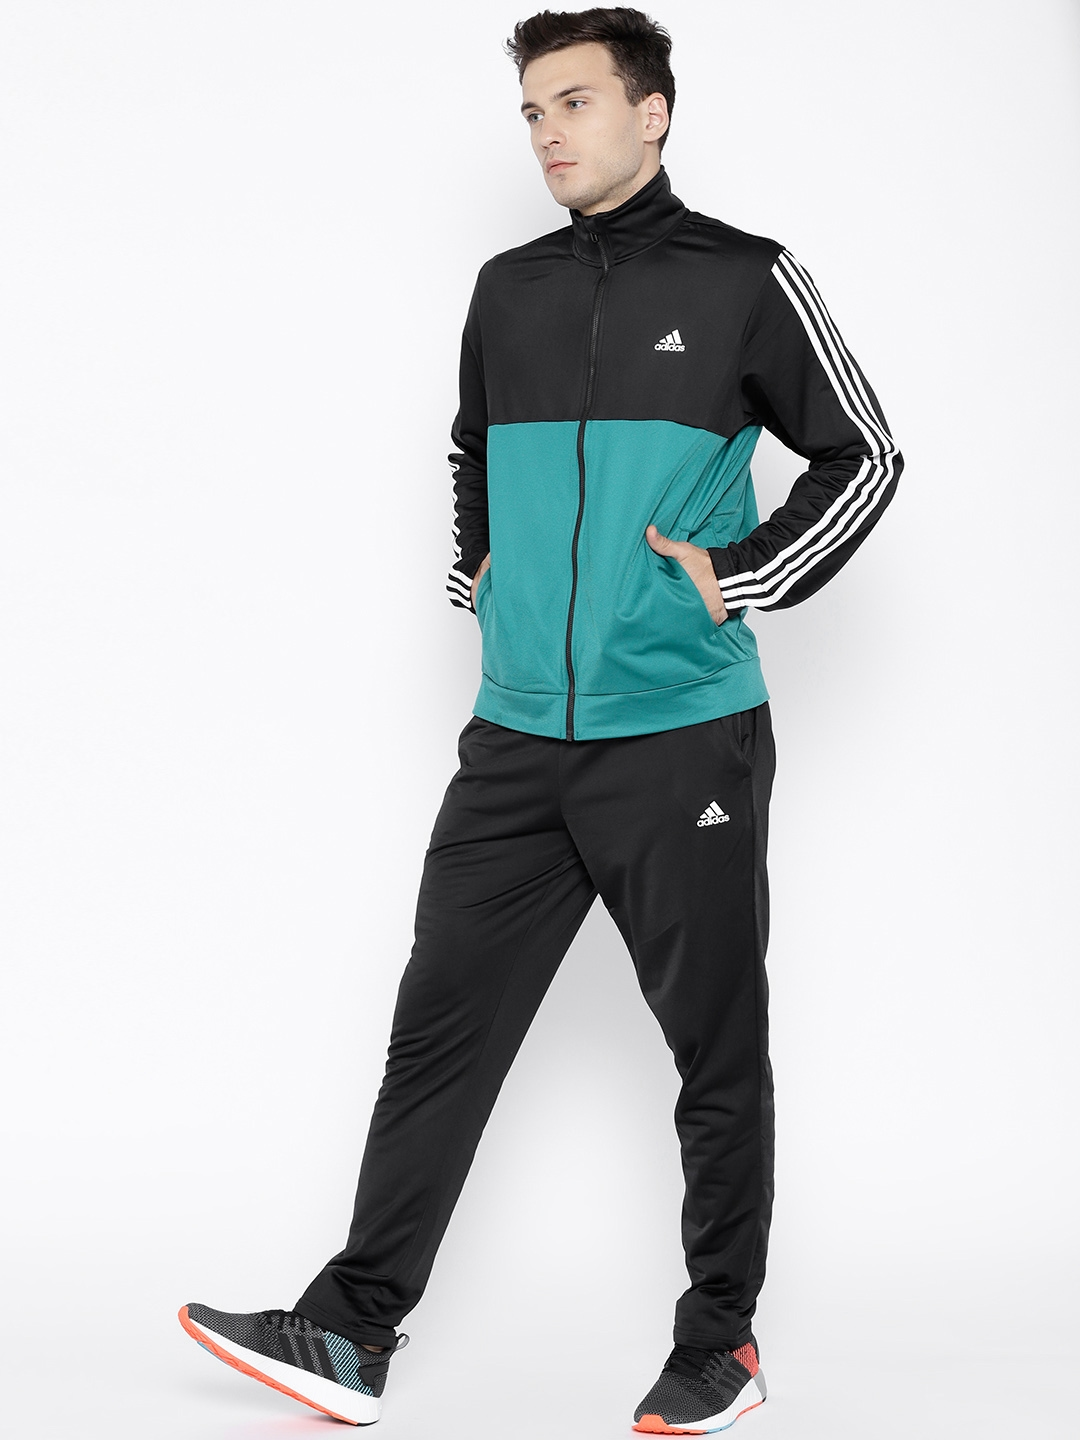 798dd865de94 Buy ADIDAS Men Black   Green Back To Basics 3 Stripes Training ...